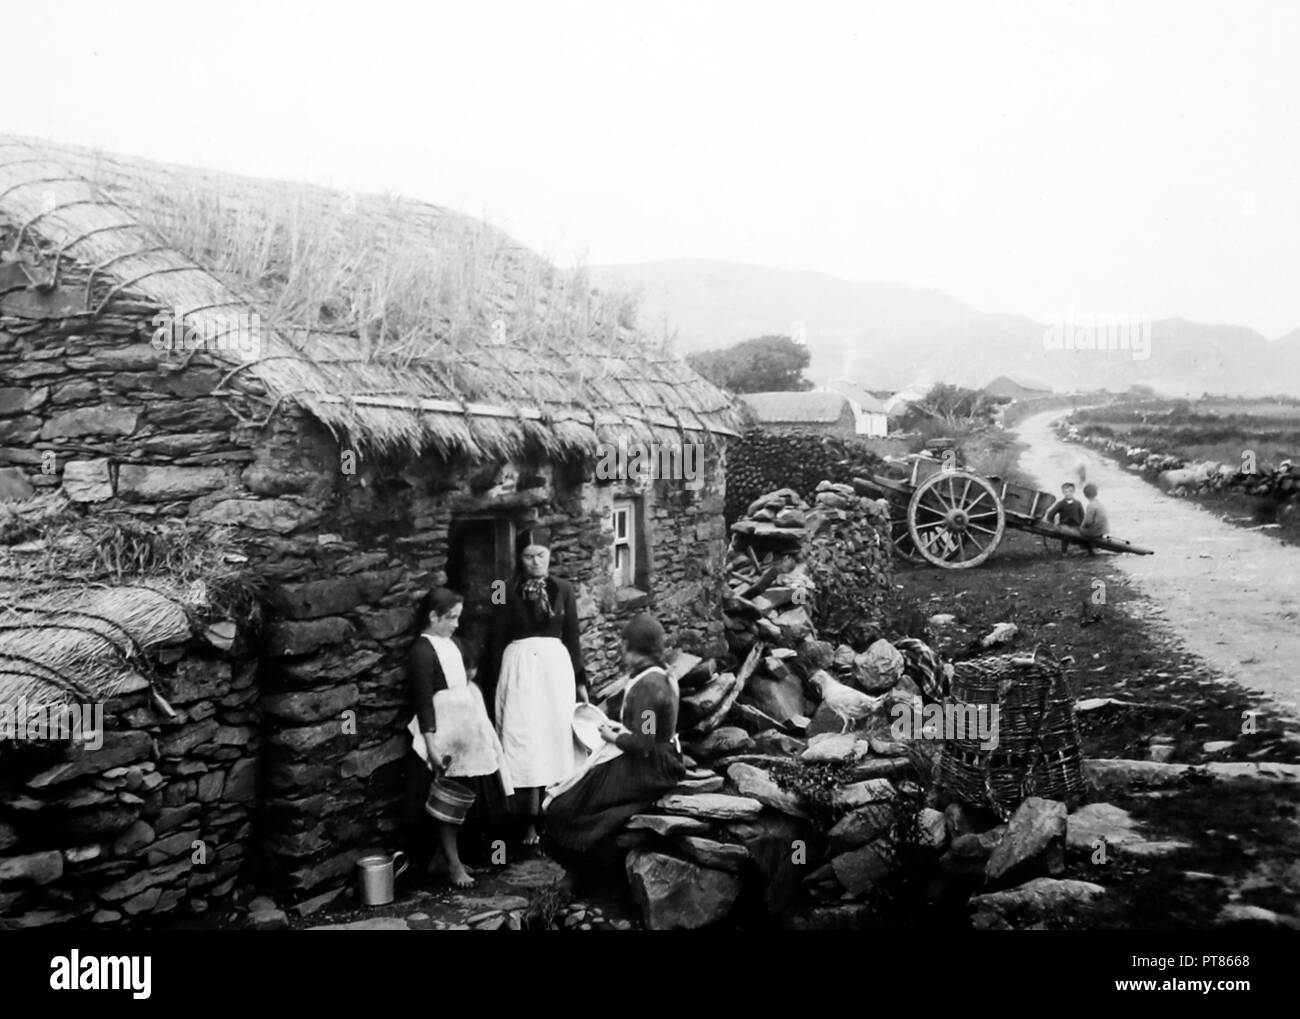 Family dwelling in Glencolmcille, West of Ireland, early 1900s - Stock Image